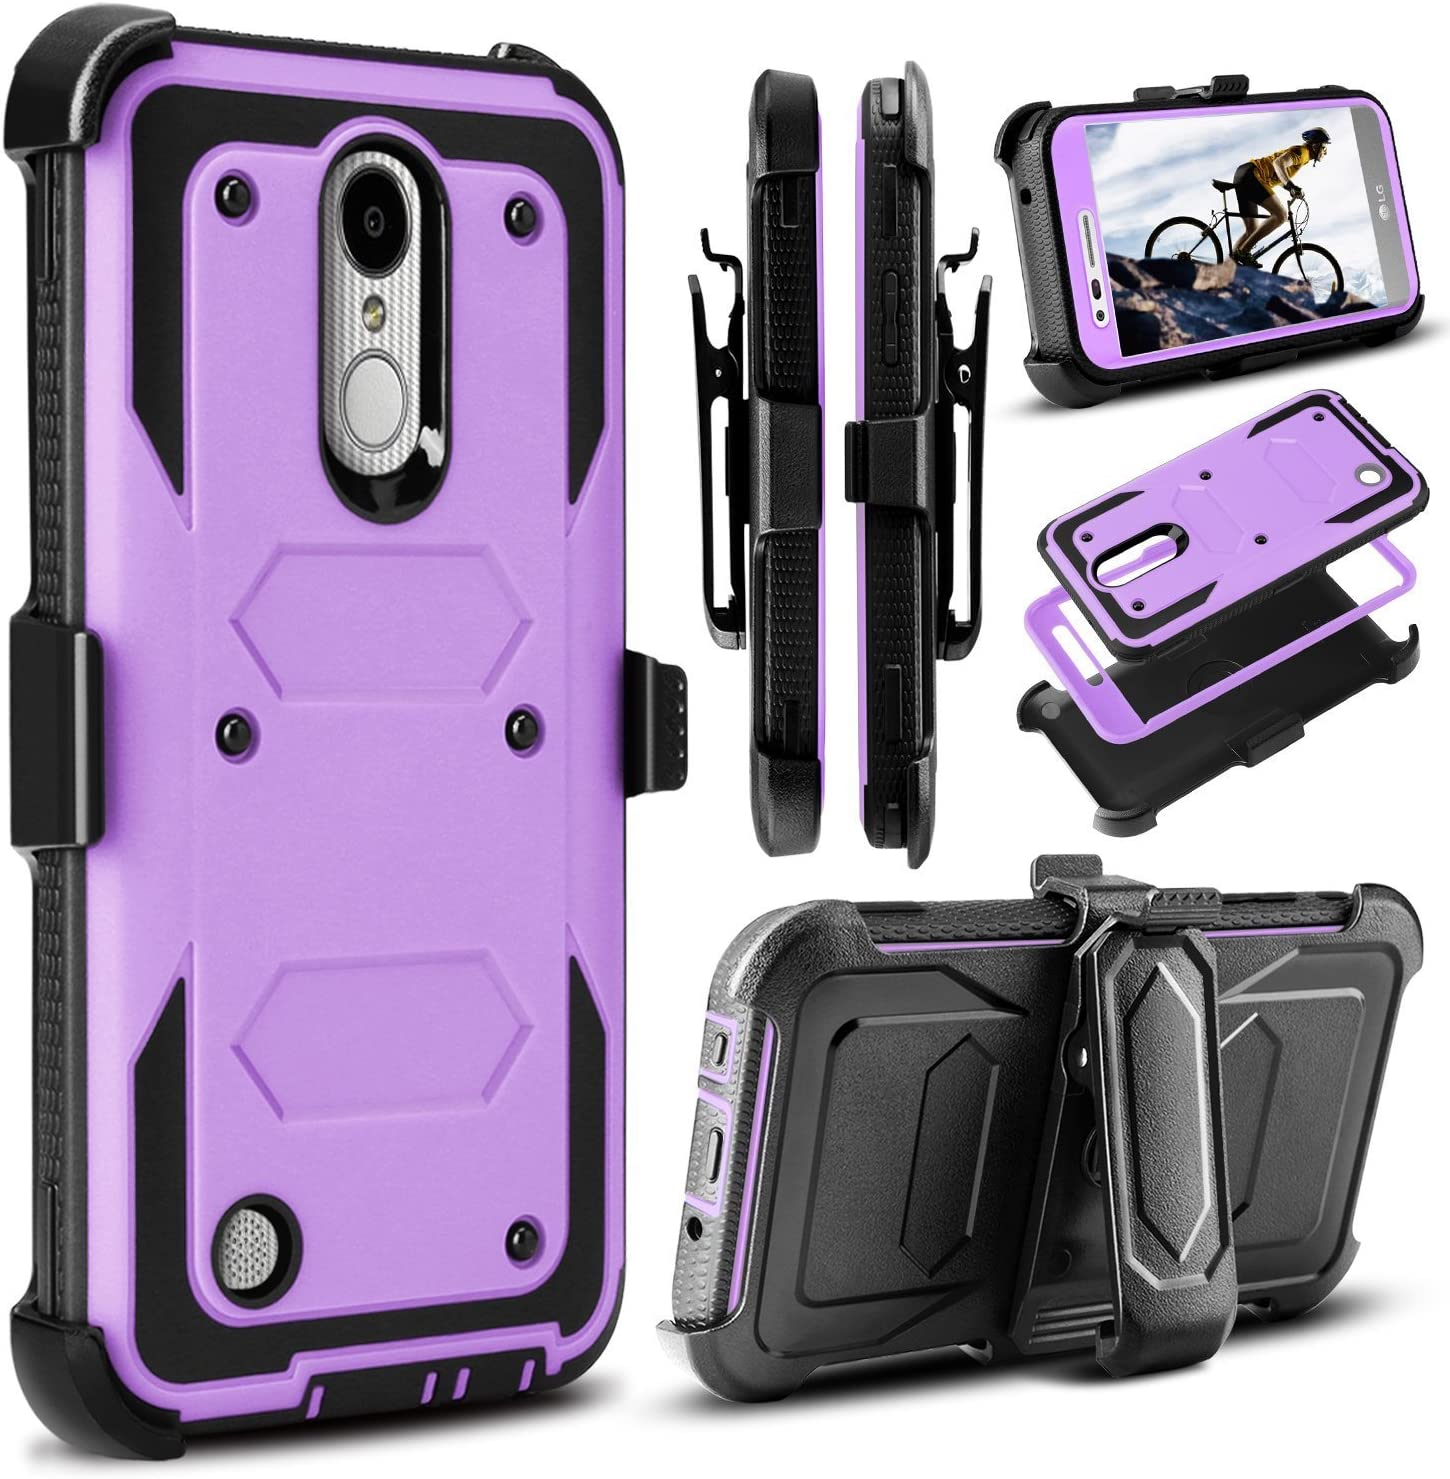 LG K20 Plus/LG K20 V/LG Harmony/LG K10 2017/ LG V5 / Grace LTE Case,Heavy Duty Shockproof[Kickstand][Belt Clip]Dual-Layer Full-Body Armor Rugged Protection Case With Built-in Screen Protector (Lilac)